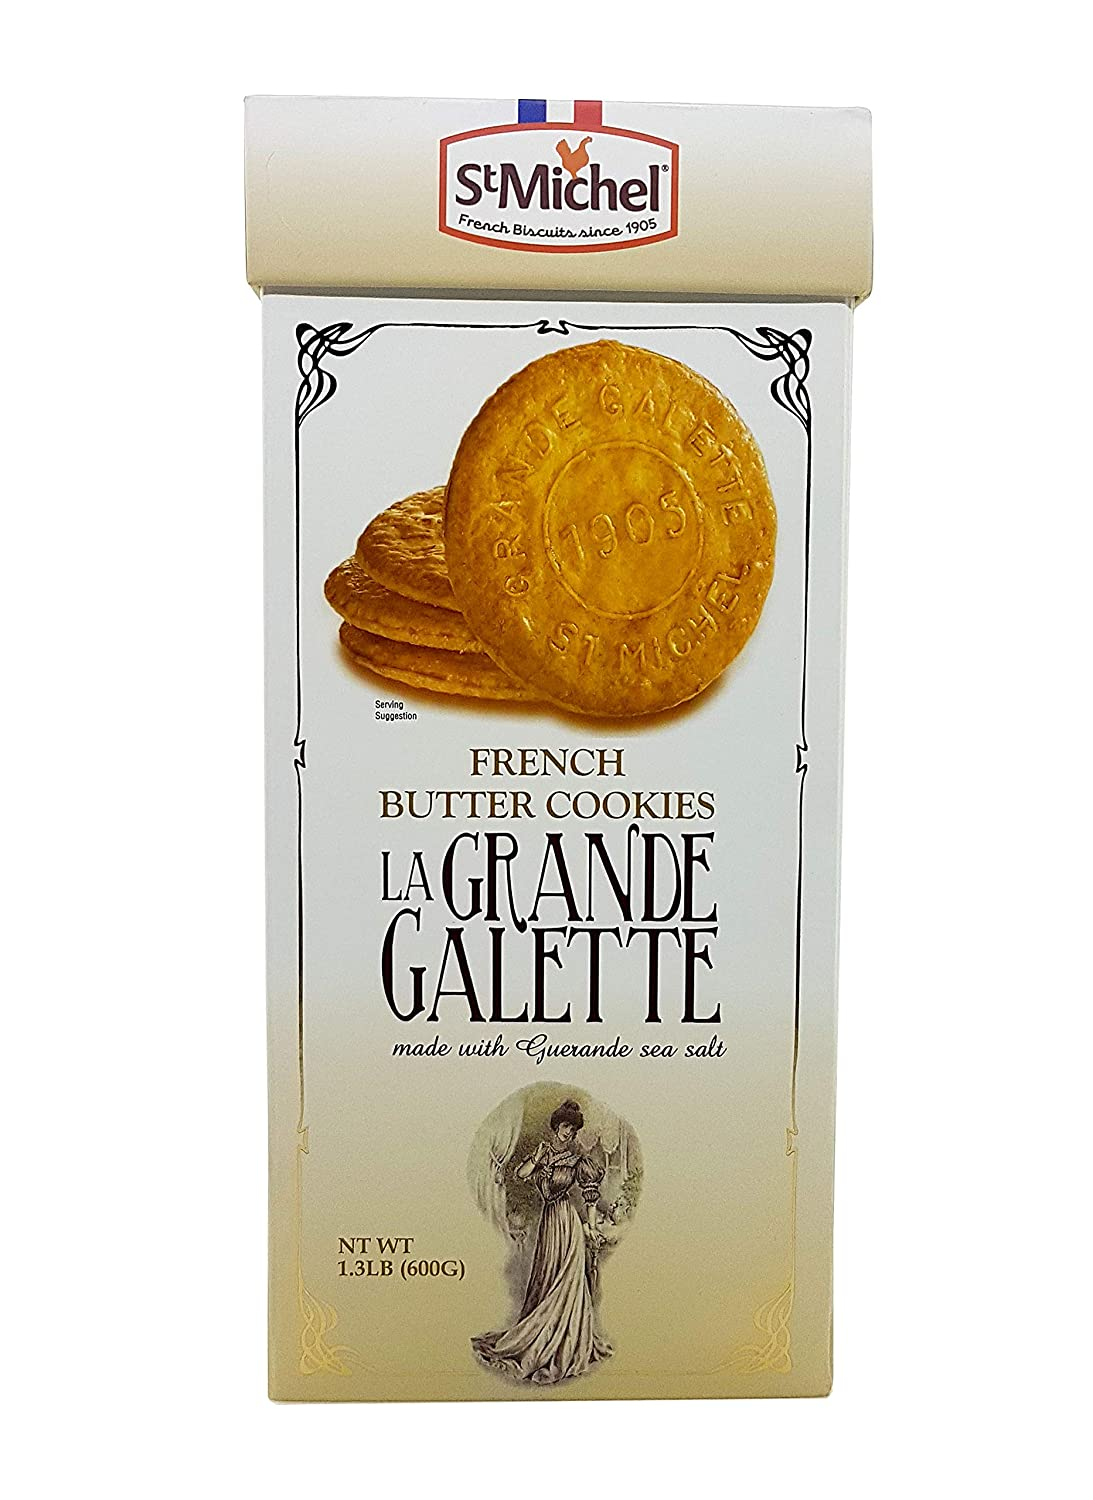 St Michel La Grande Galette French Butter Cookies Biscuits from France 1.3 LB